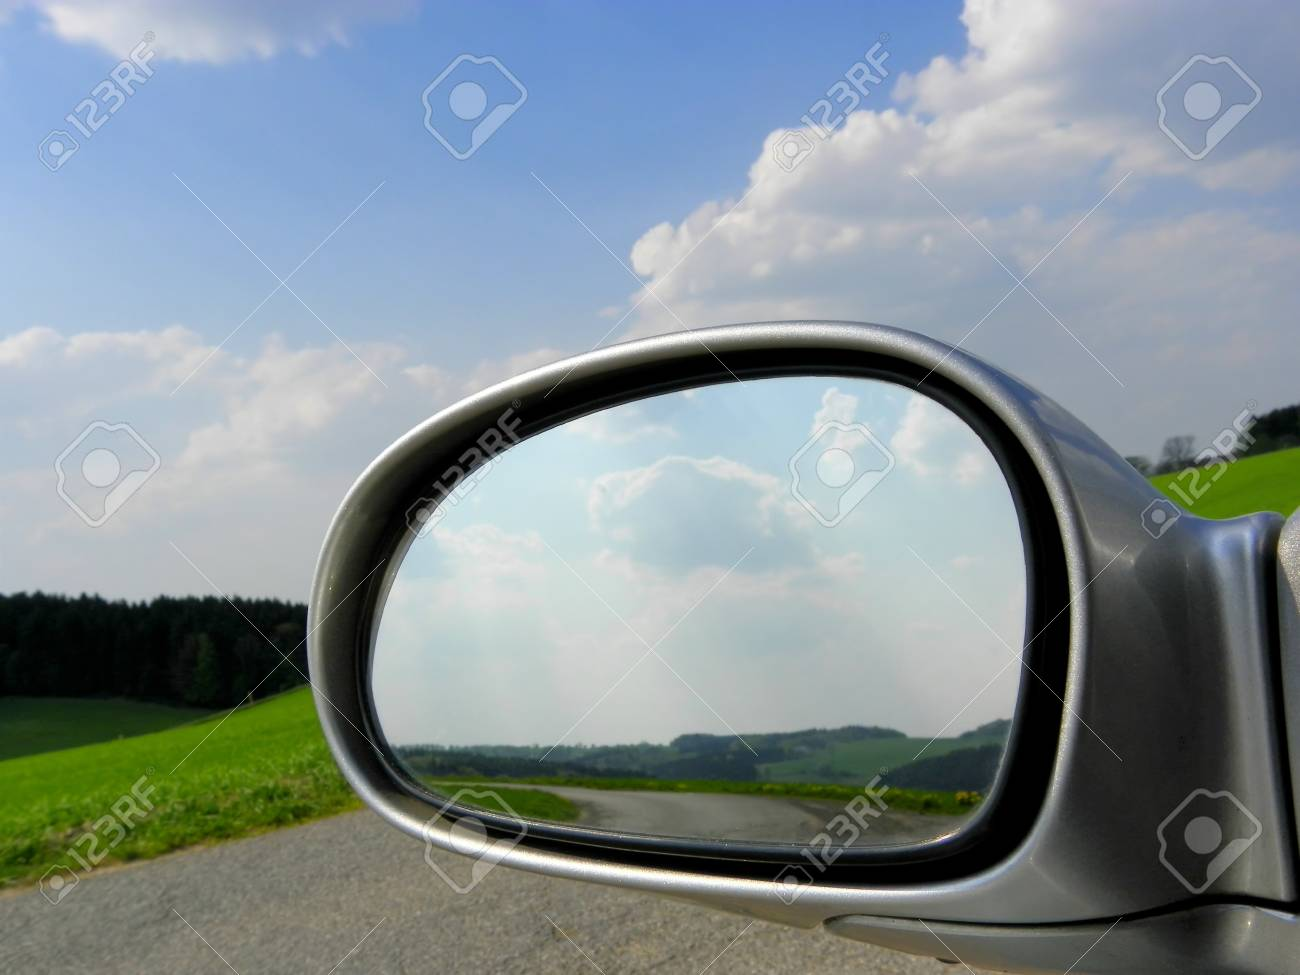 Car Mirror Standard-Bild - 9412073